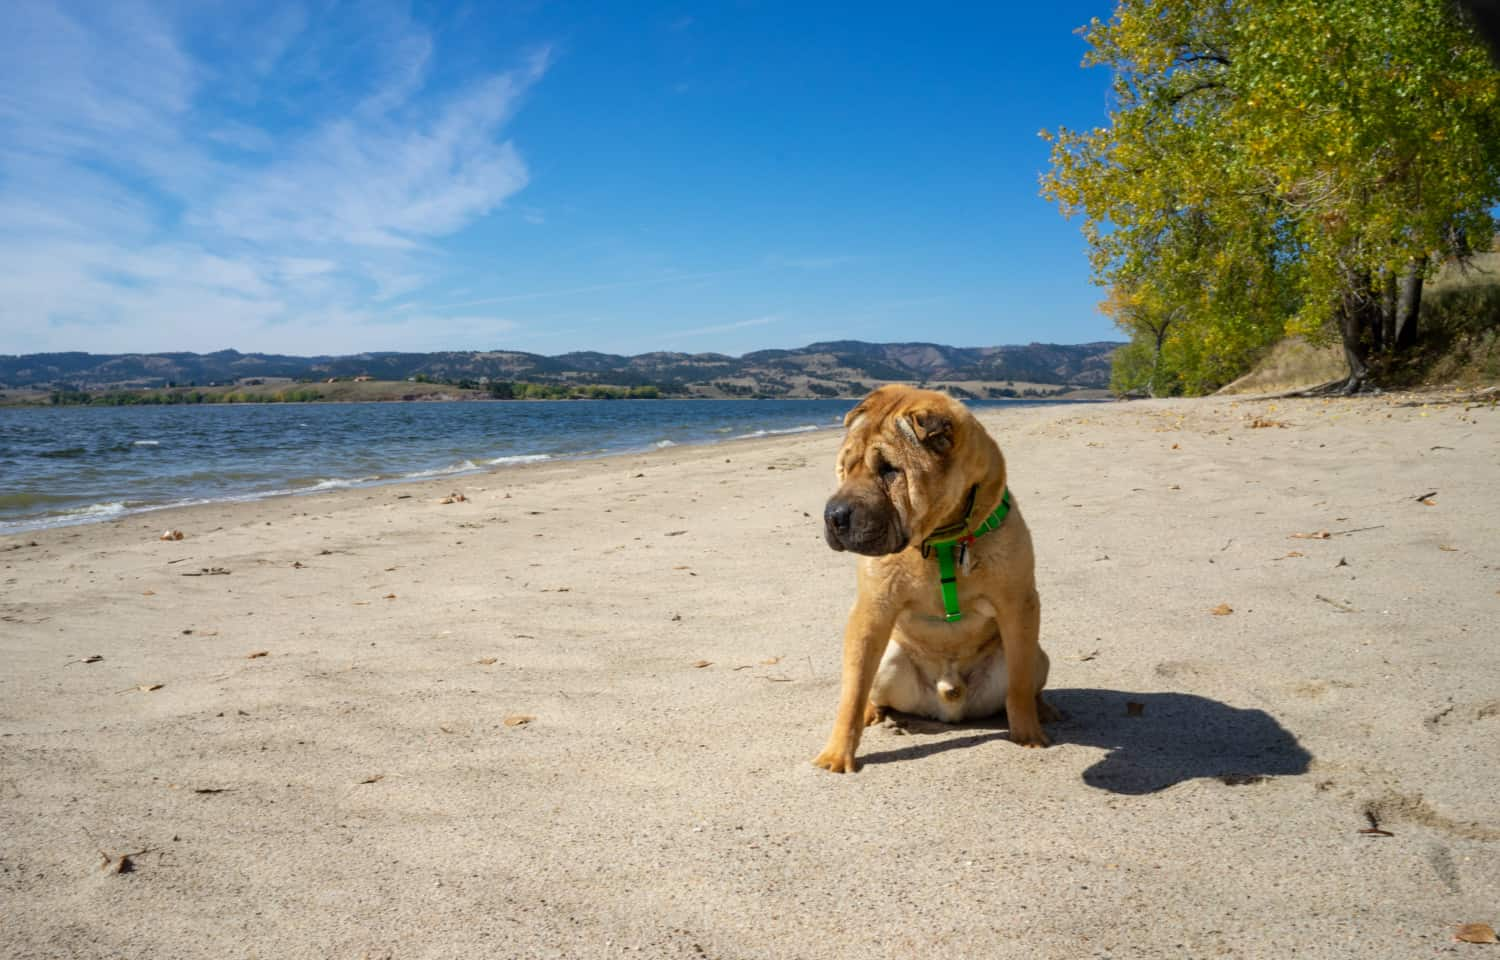 Ty the Shar-pei from GoPetFriendly.com on the pet-friendly beach at Angostura Recreation Area, SD